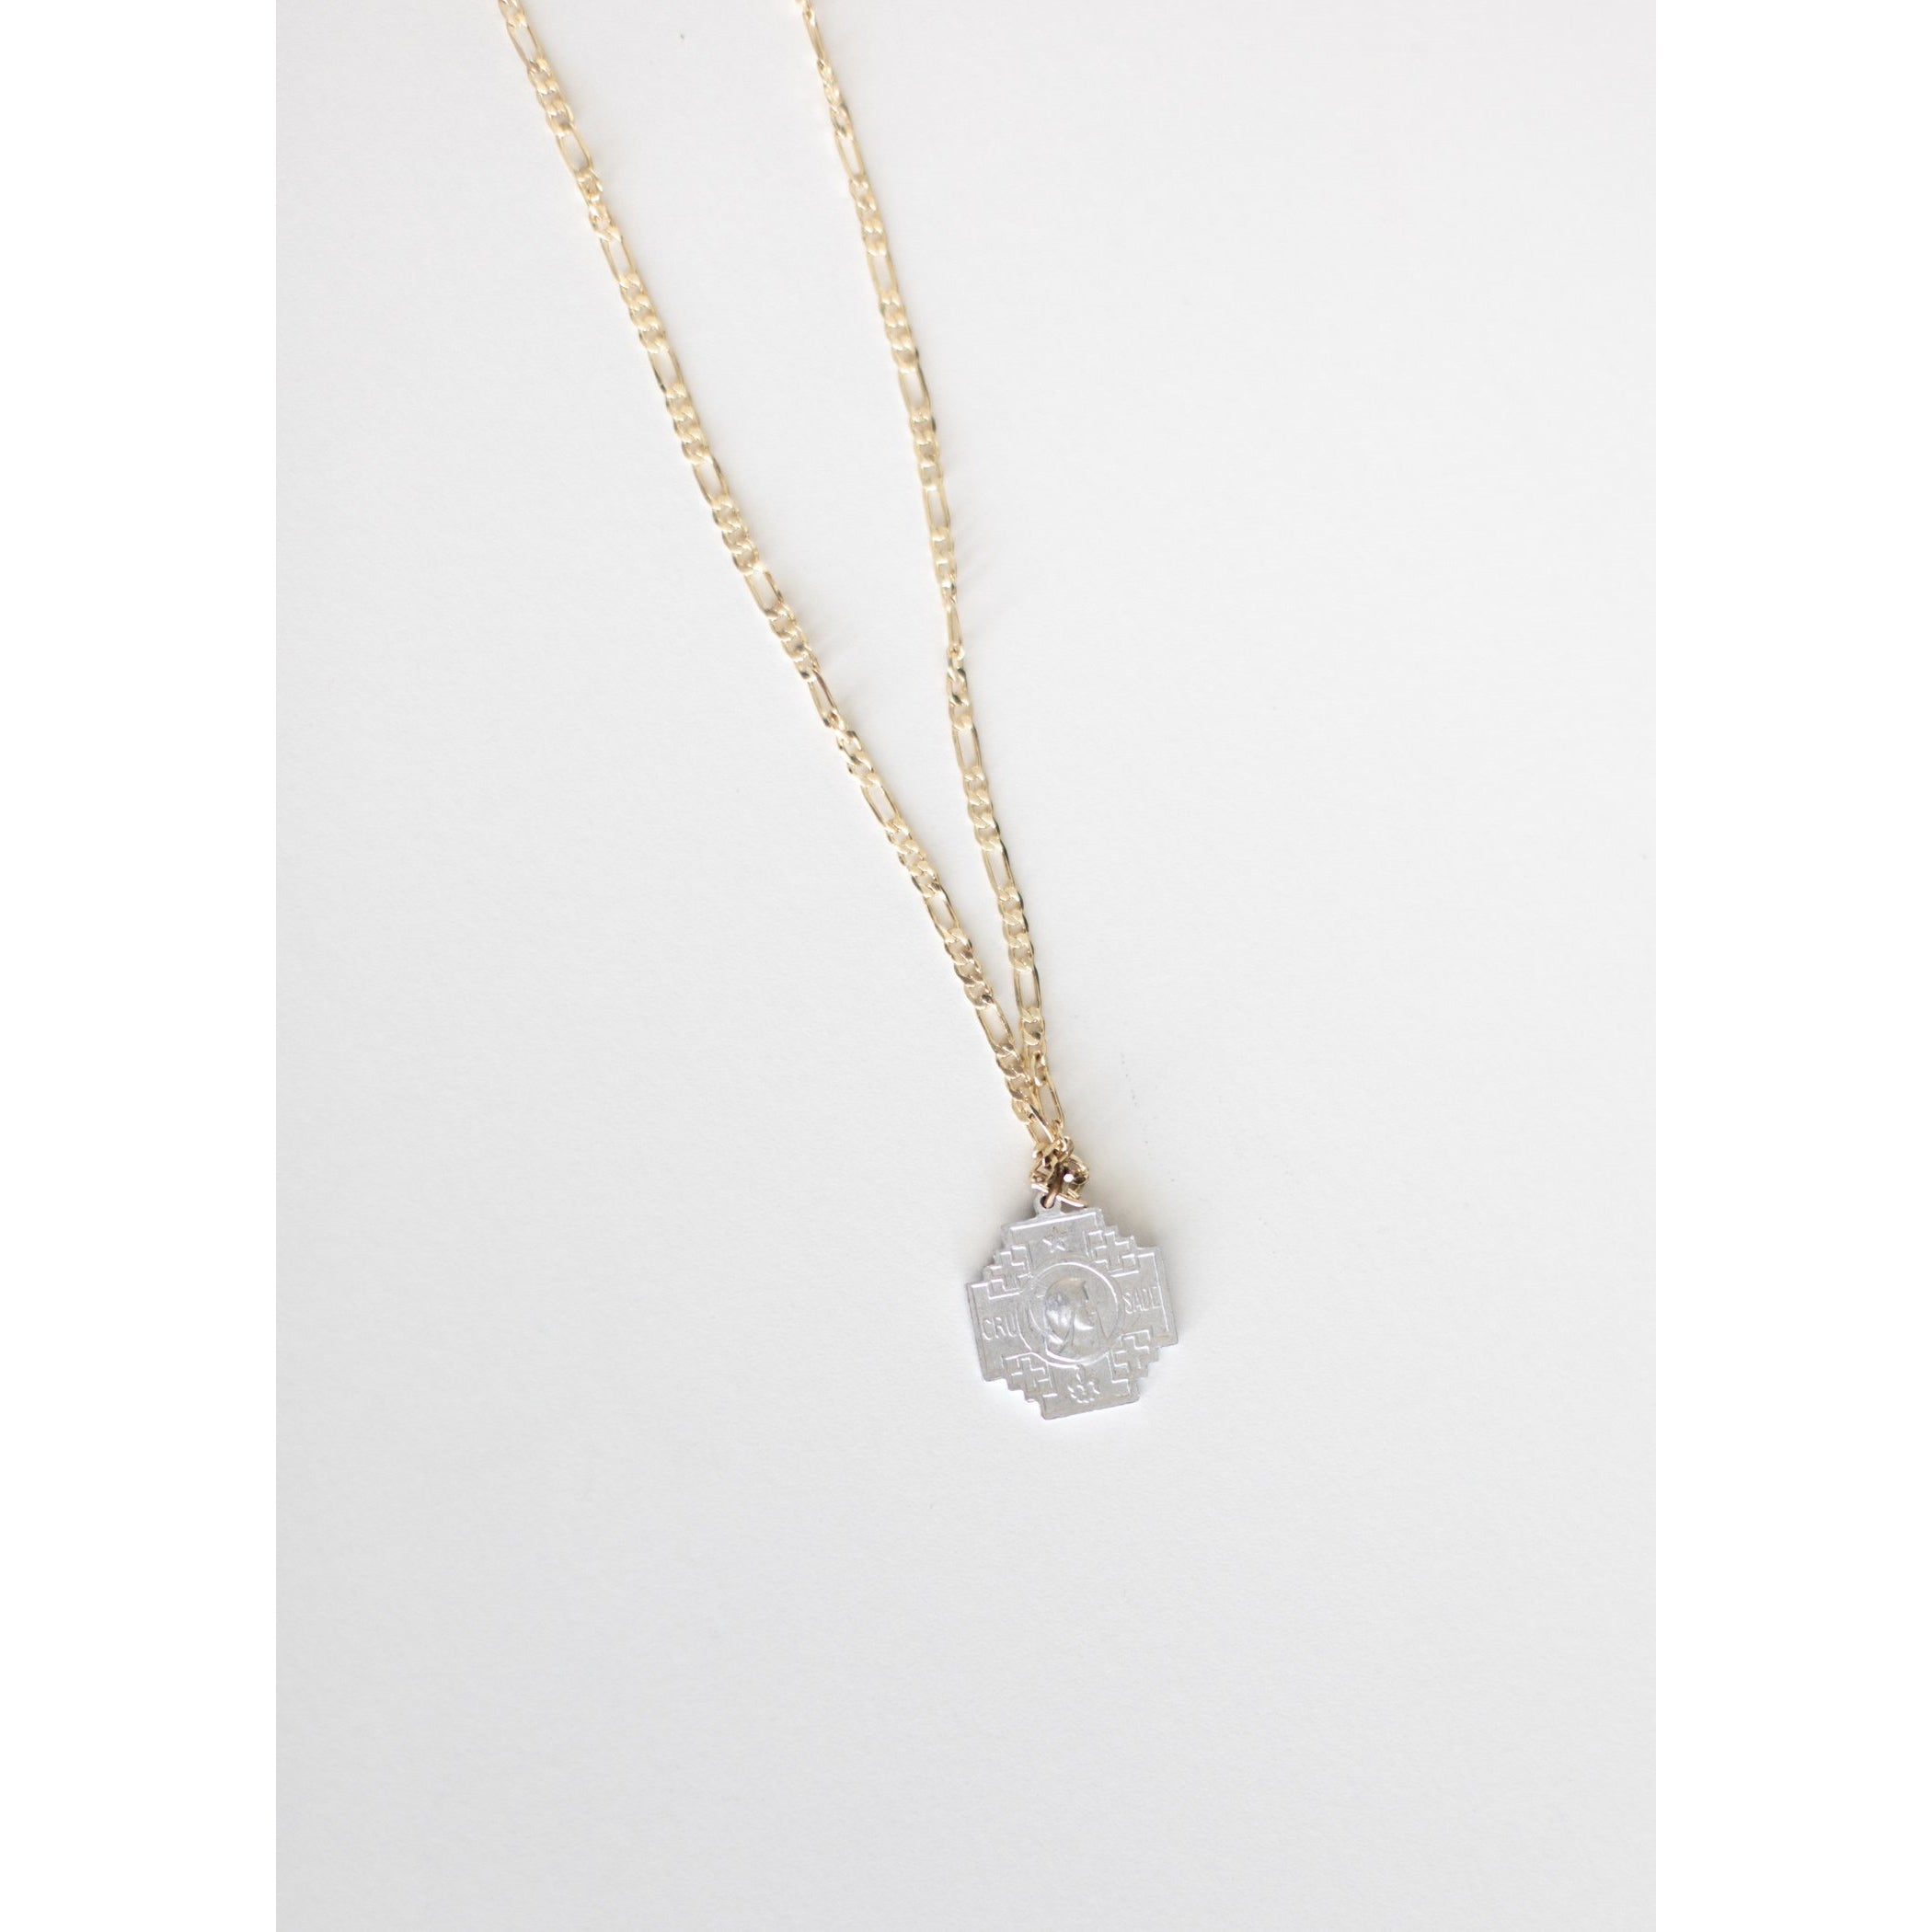 Victorious Resurrection Charm Necklace